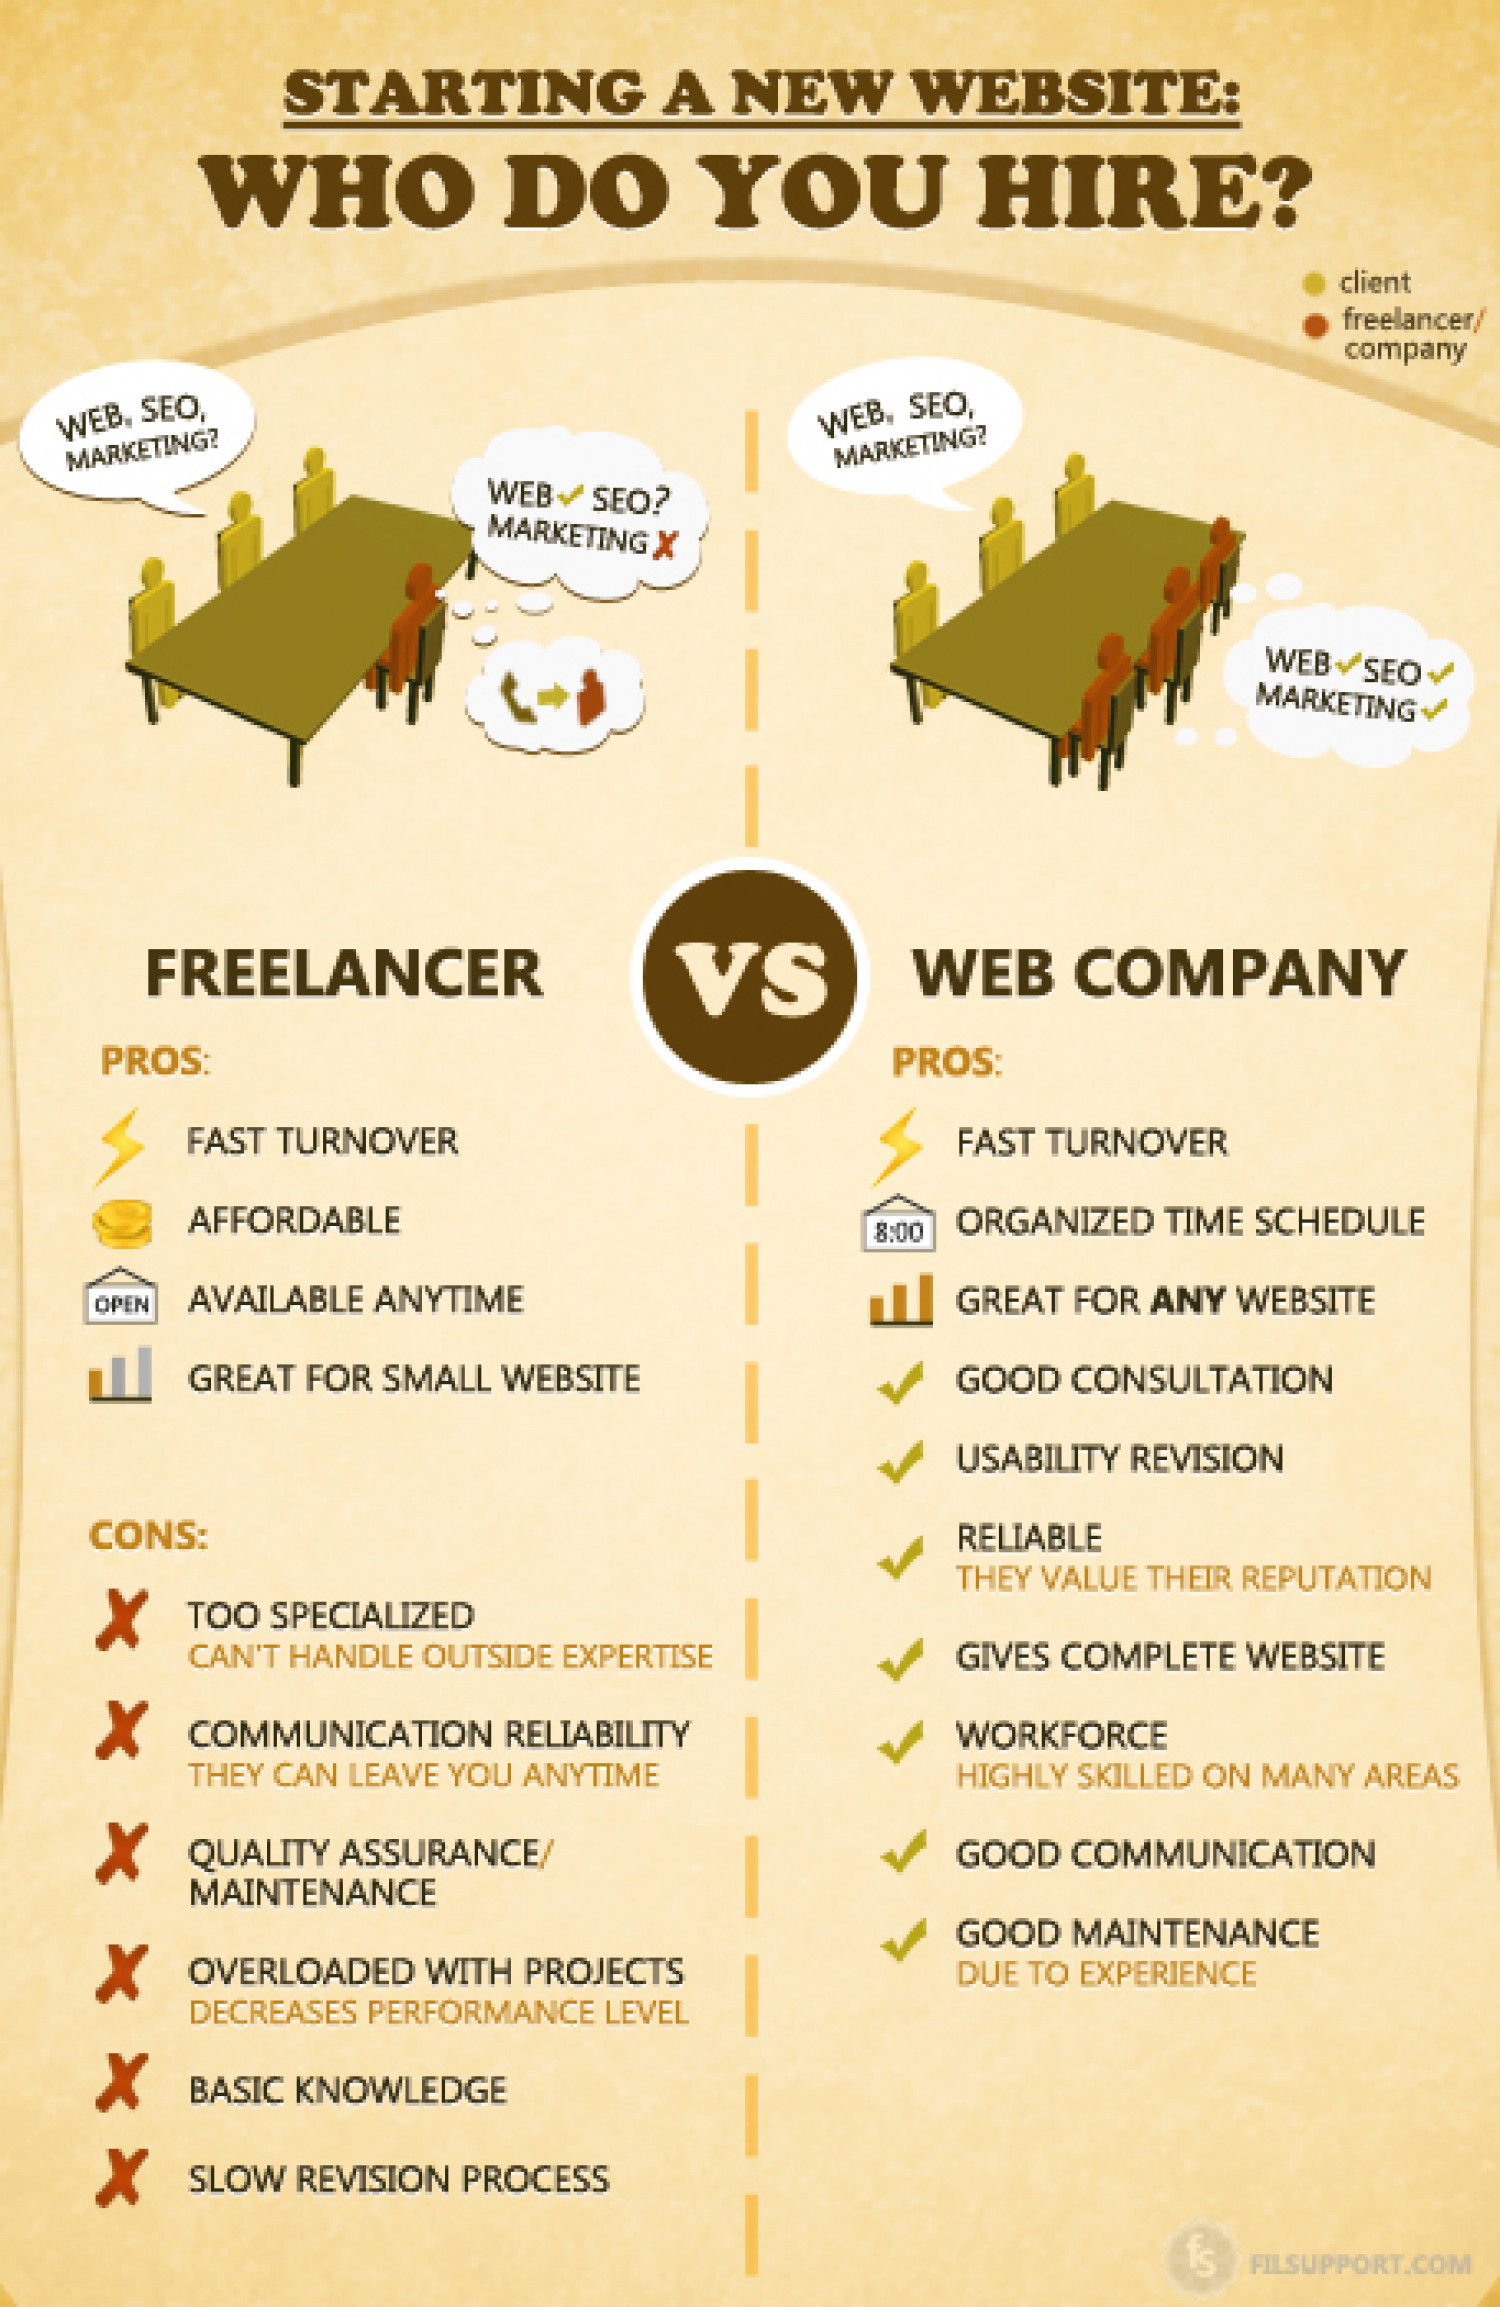 Starting a New Website: Who Do You Hire Infographic